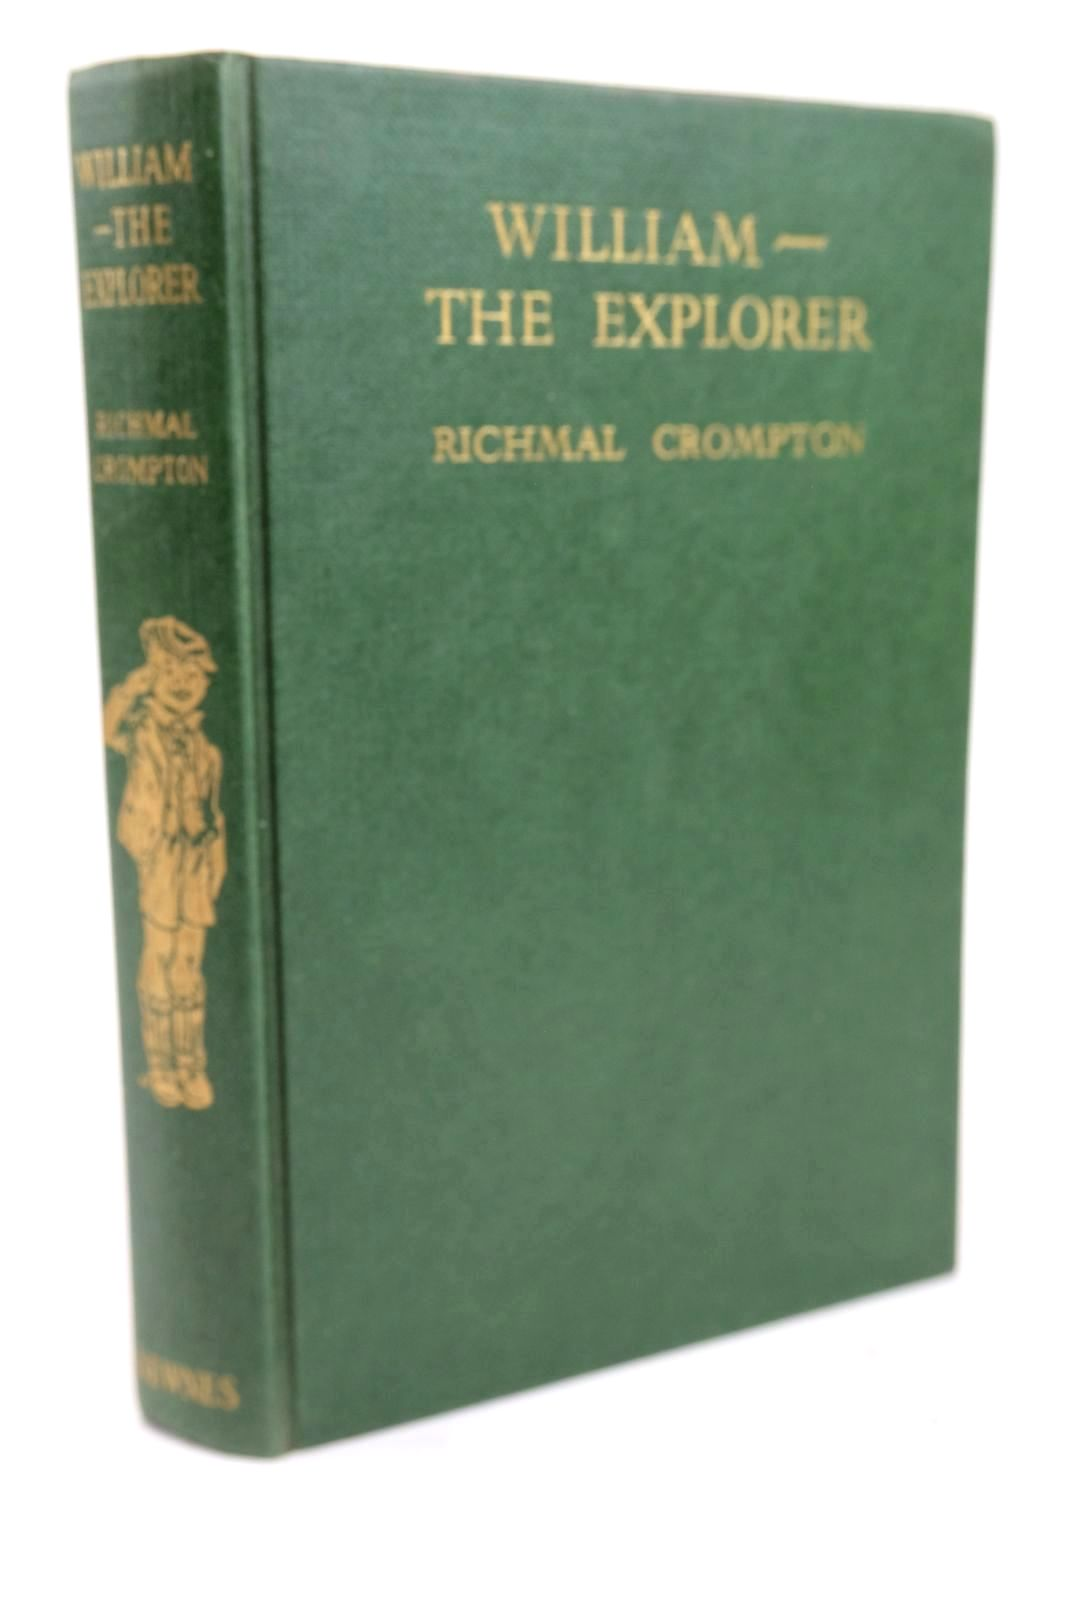 Photo of WILLIAM THE EXPLORER written by Crompton, Richmal illustrated by Henry, Thomas published by George Newnes (STOCK CODE: 1319426)  for sale by Stella & Rose's Books